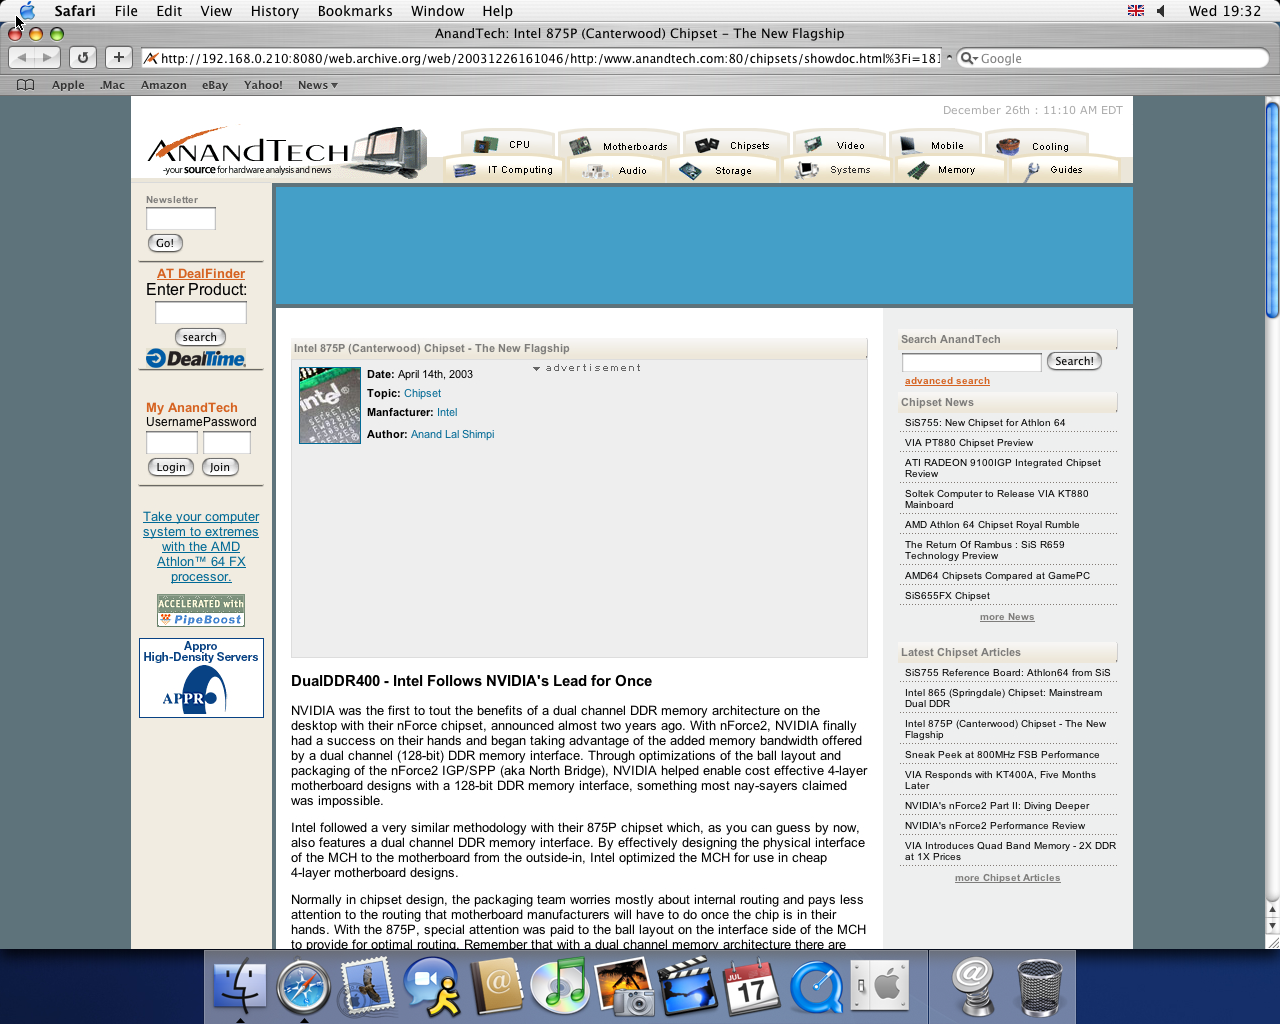 OS X 10.3 PPC with Safari 1.1 displaying a page from AnandTech archived at December 26, 2003 at 16:10:46